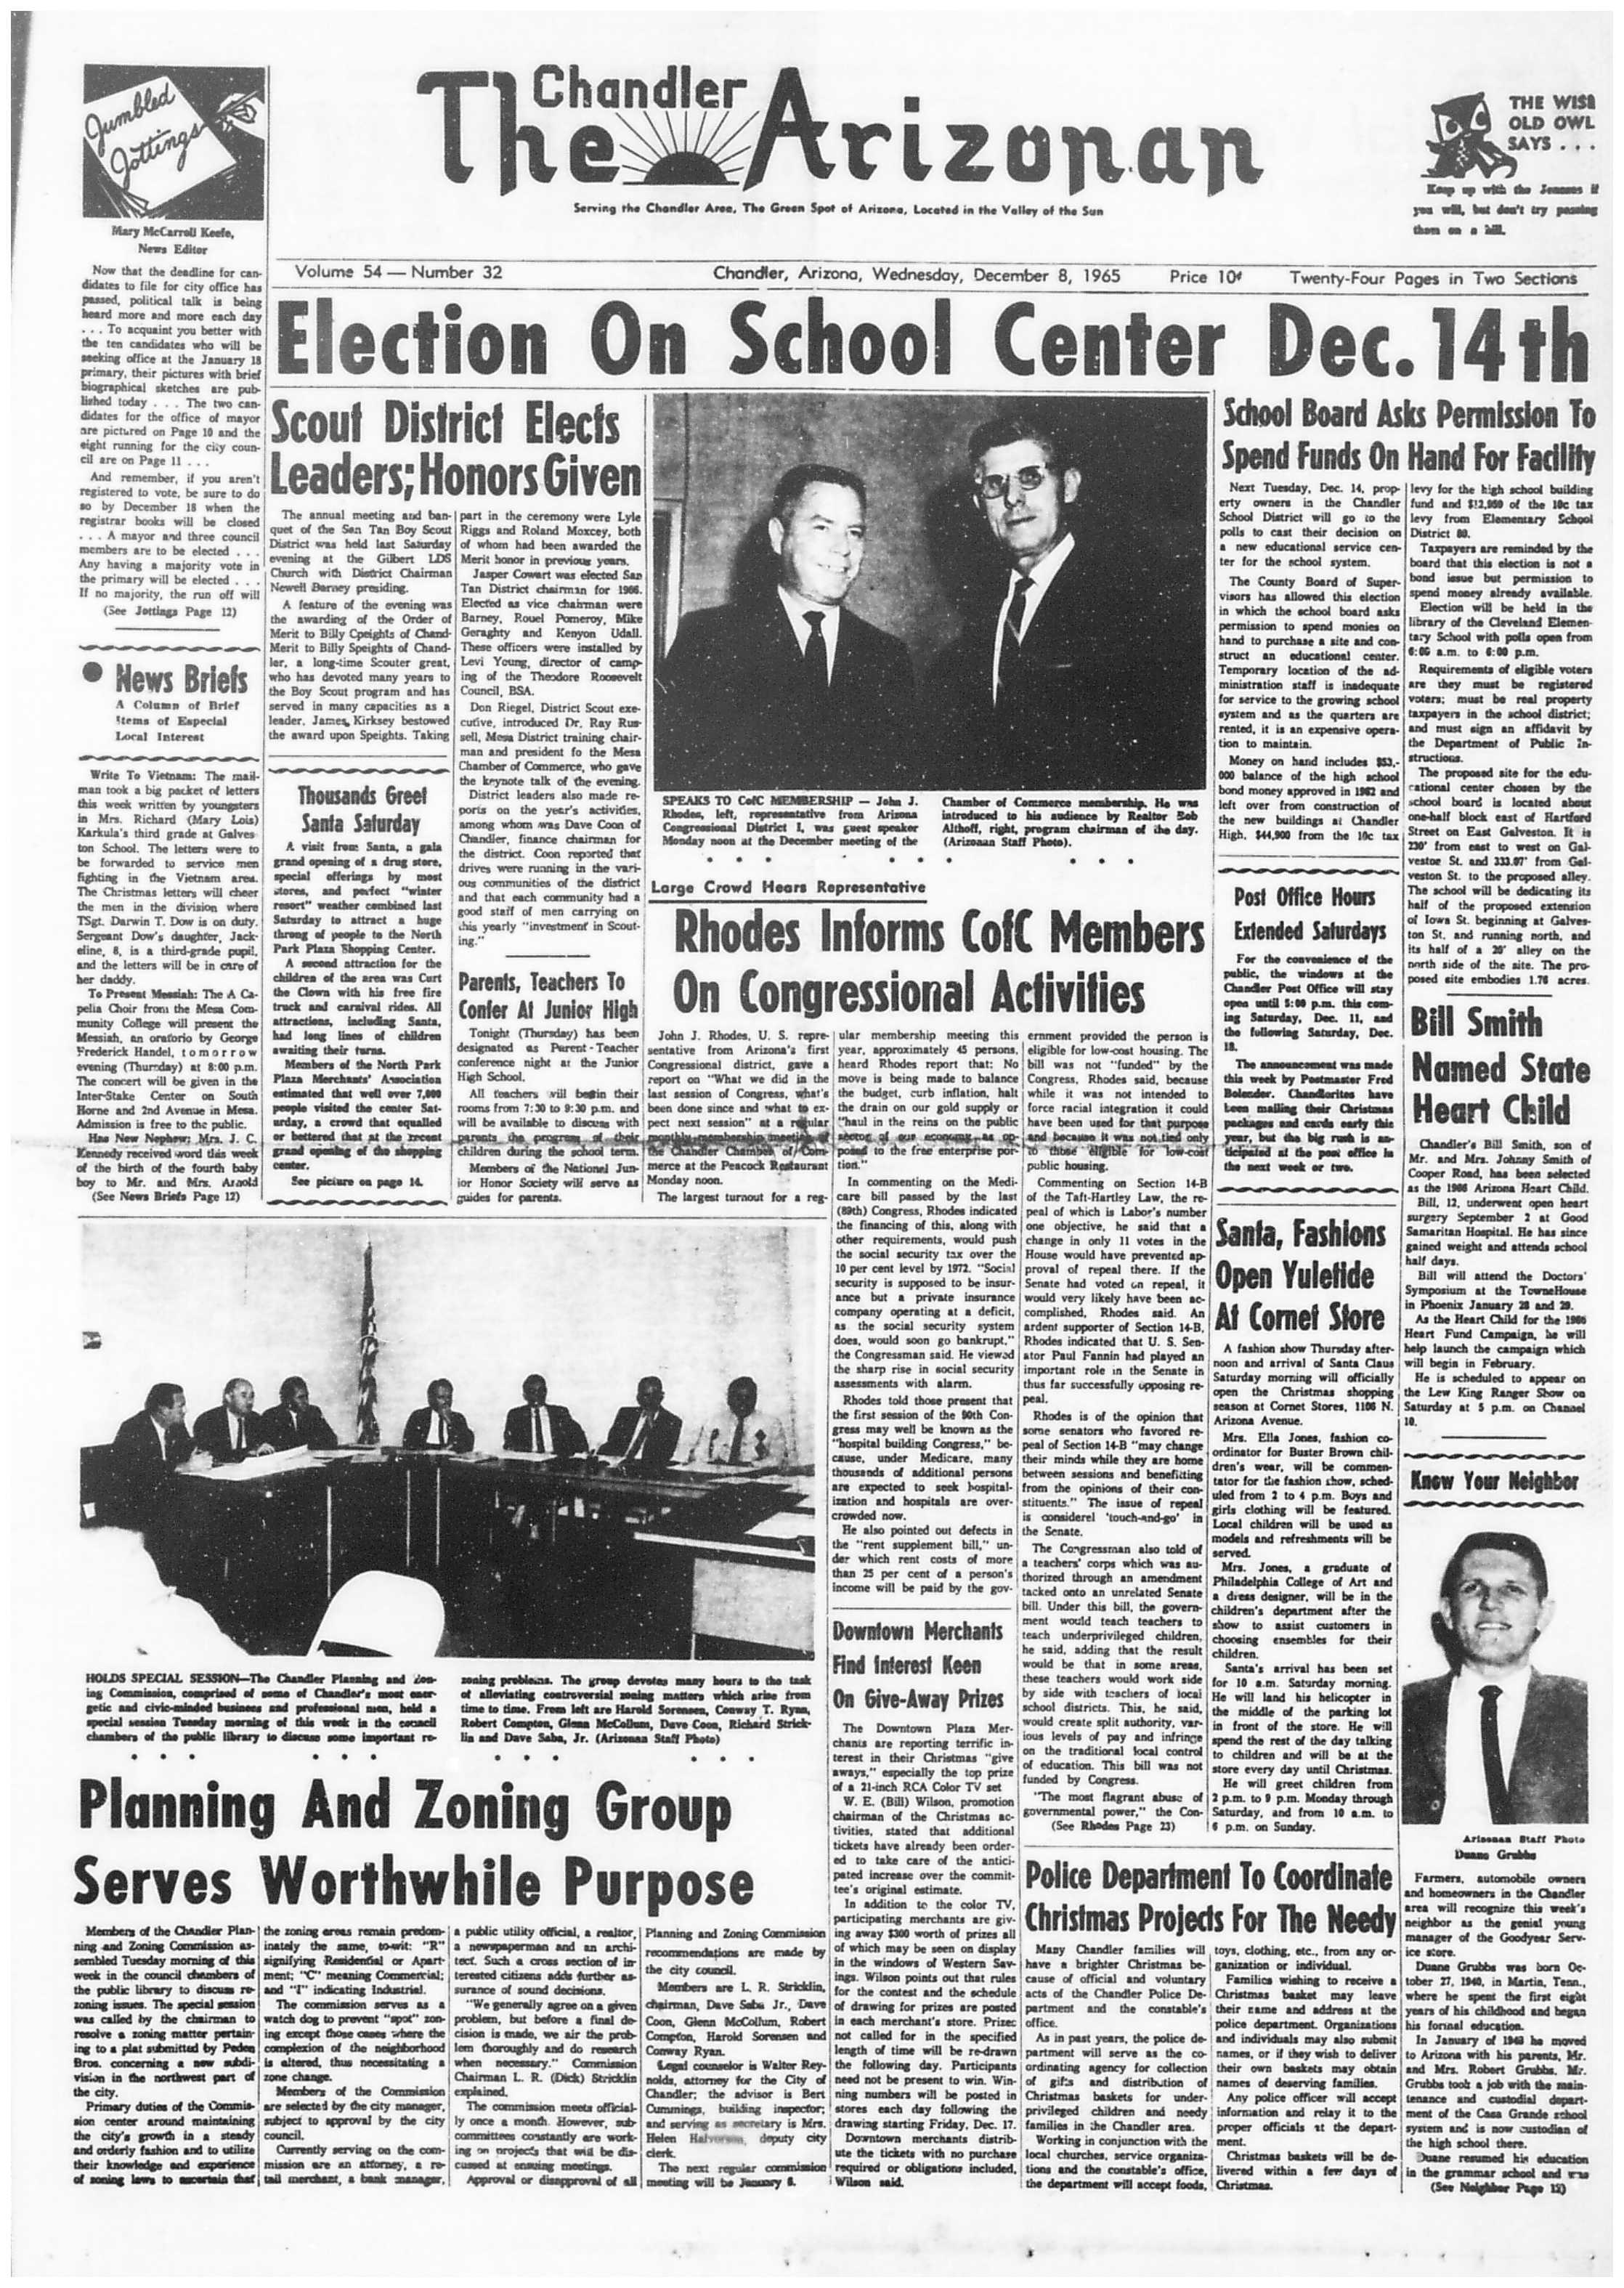 12-8-1965 - Page 1 .jpg